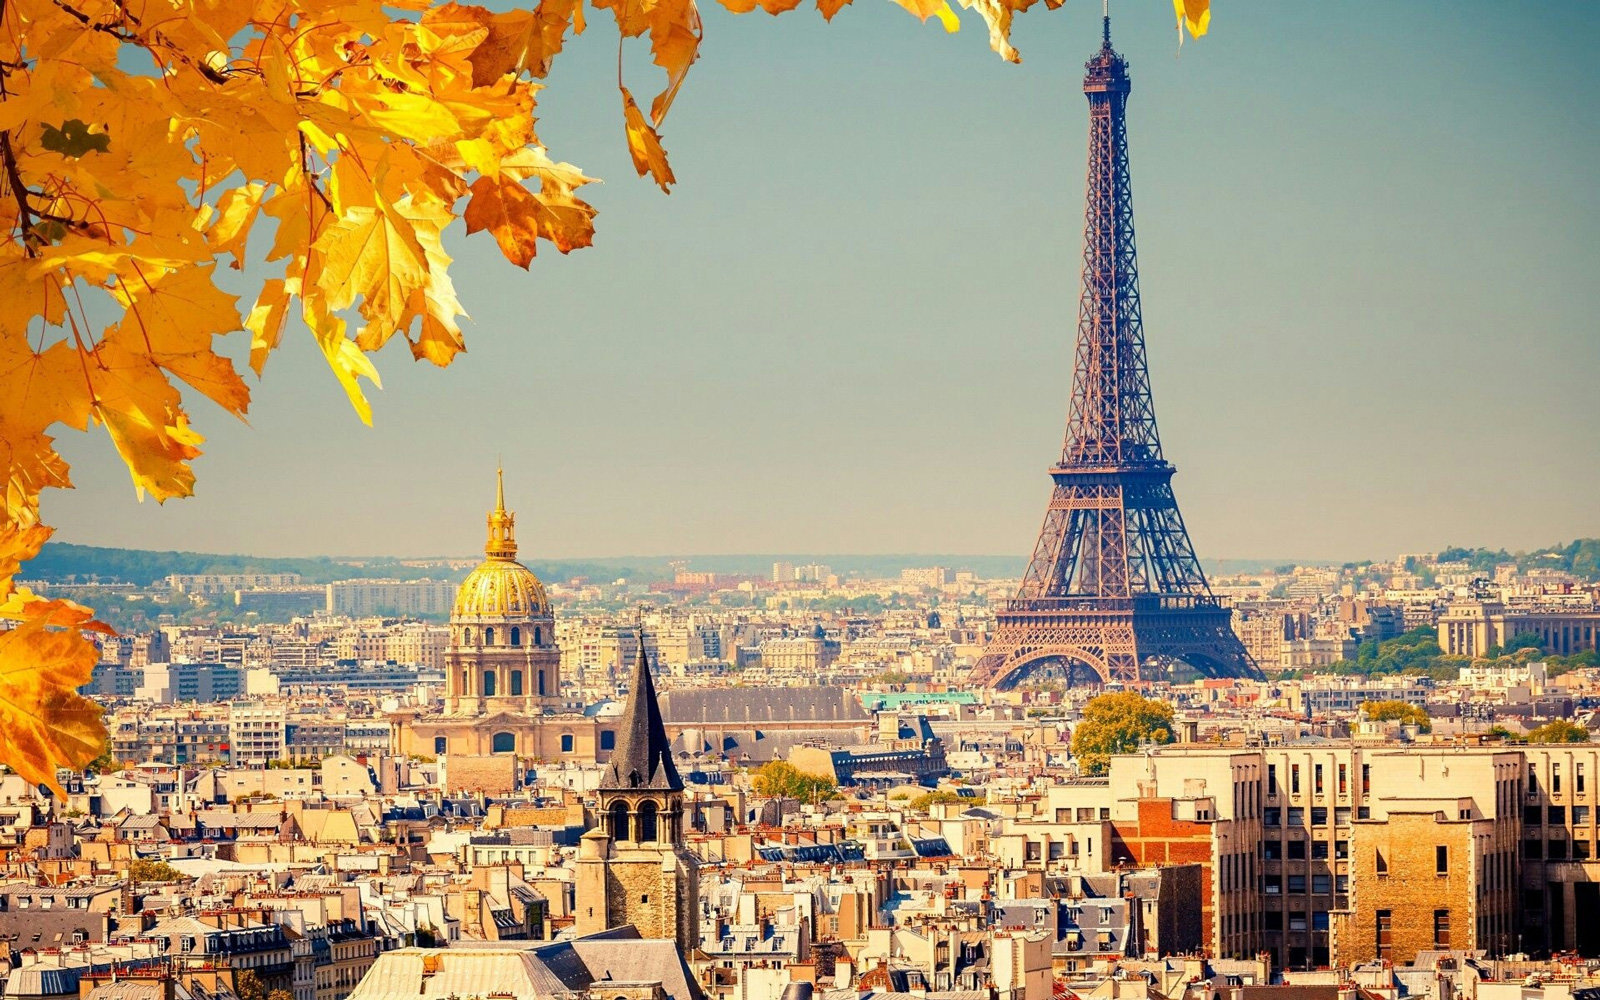 Pay $69 to go to Europe.